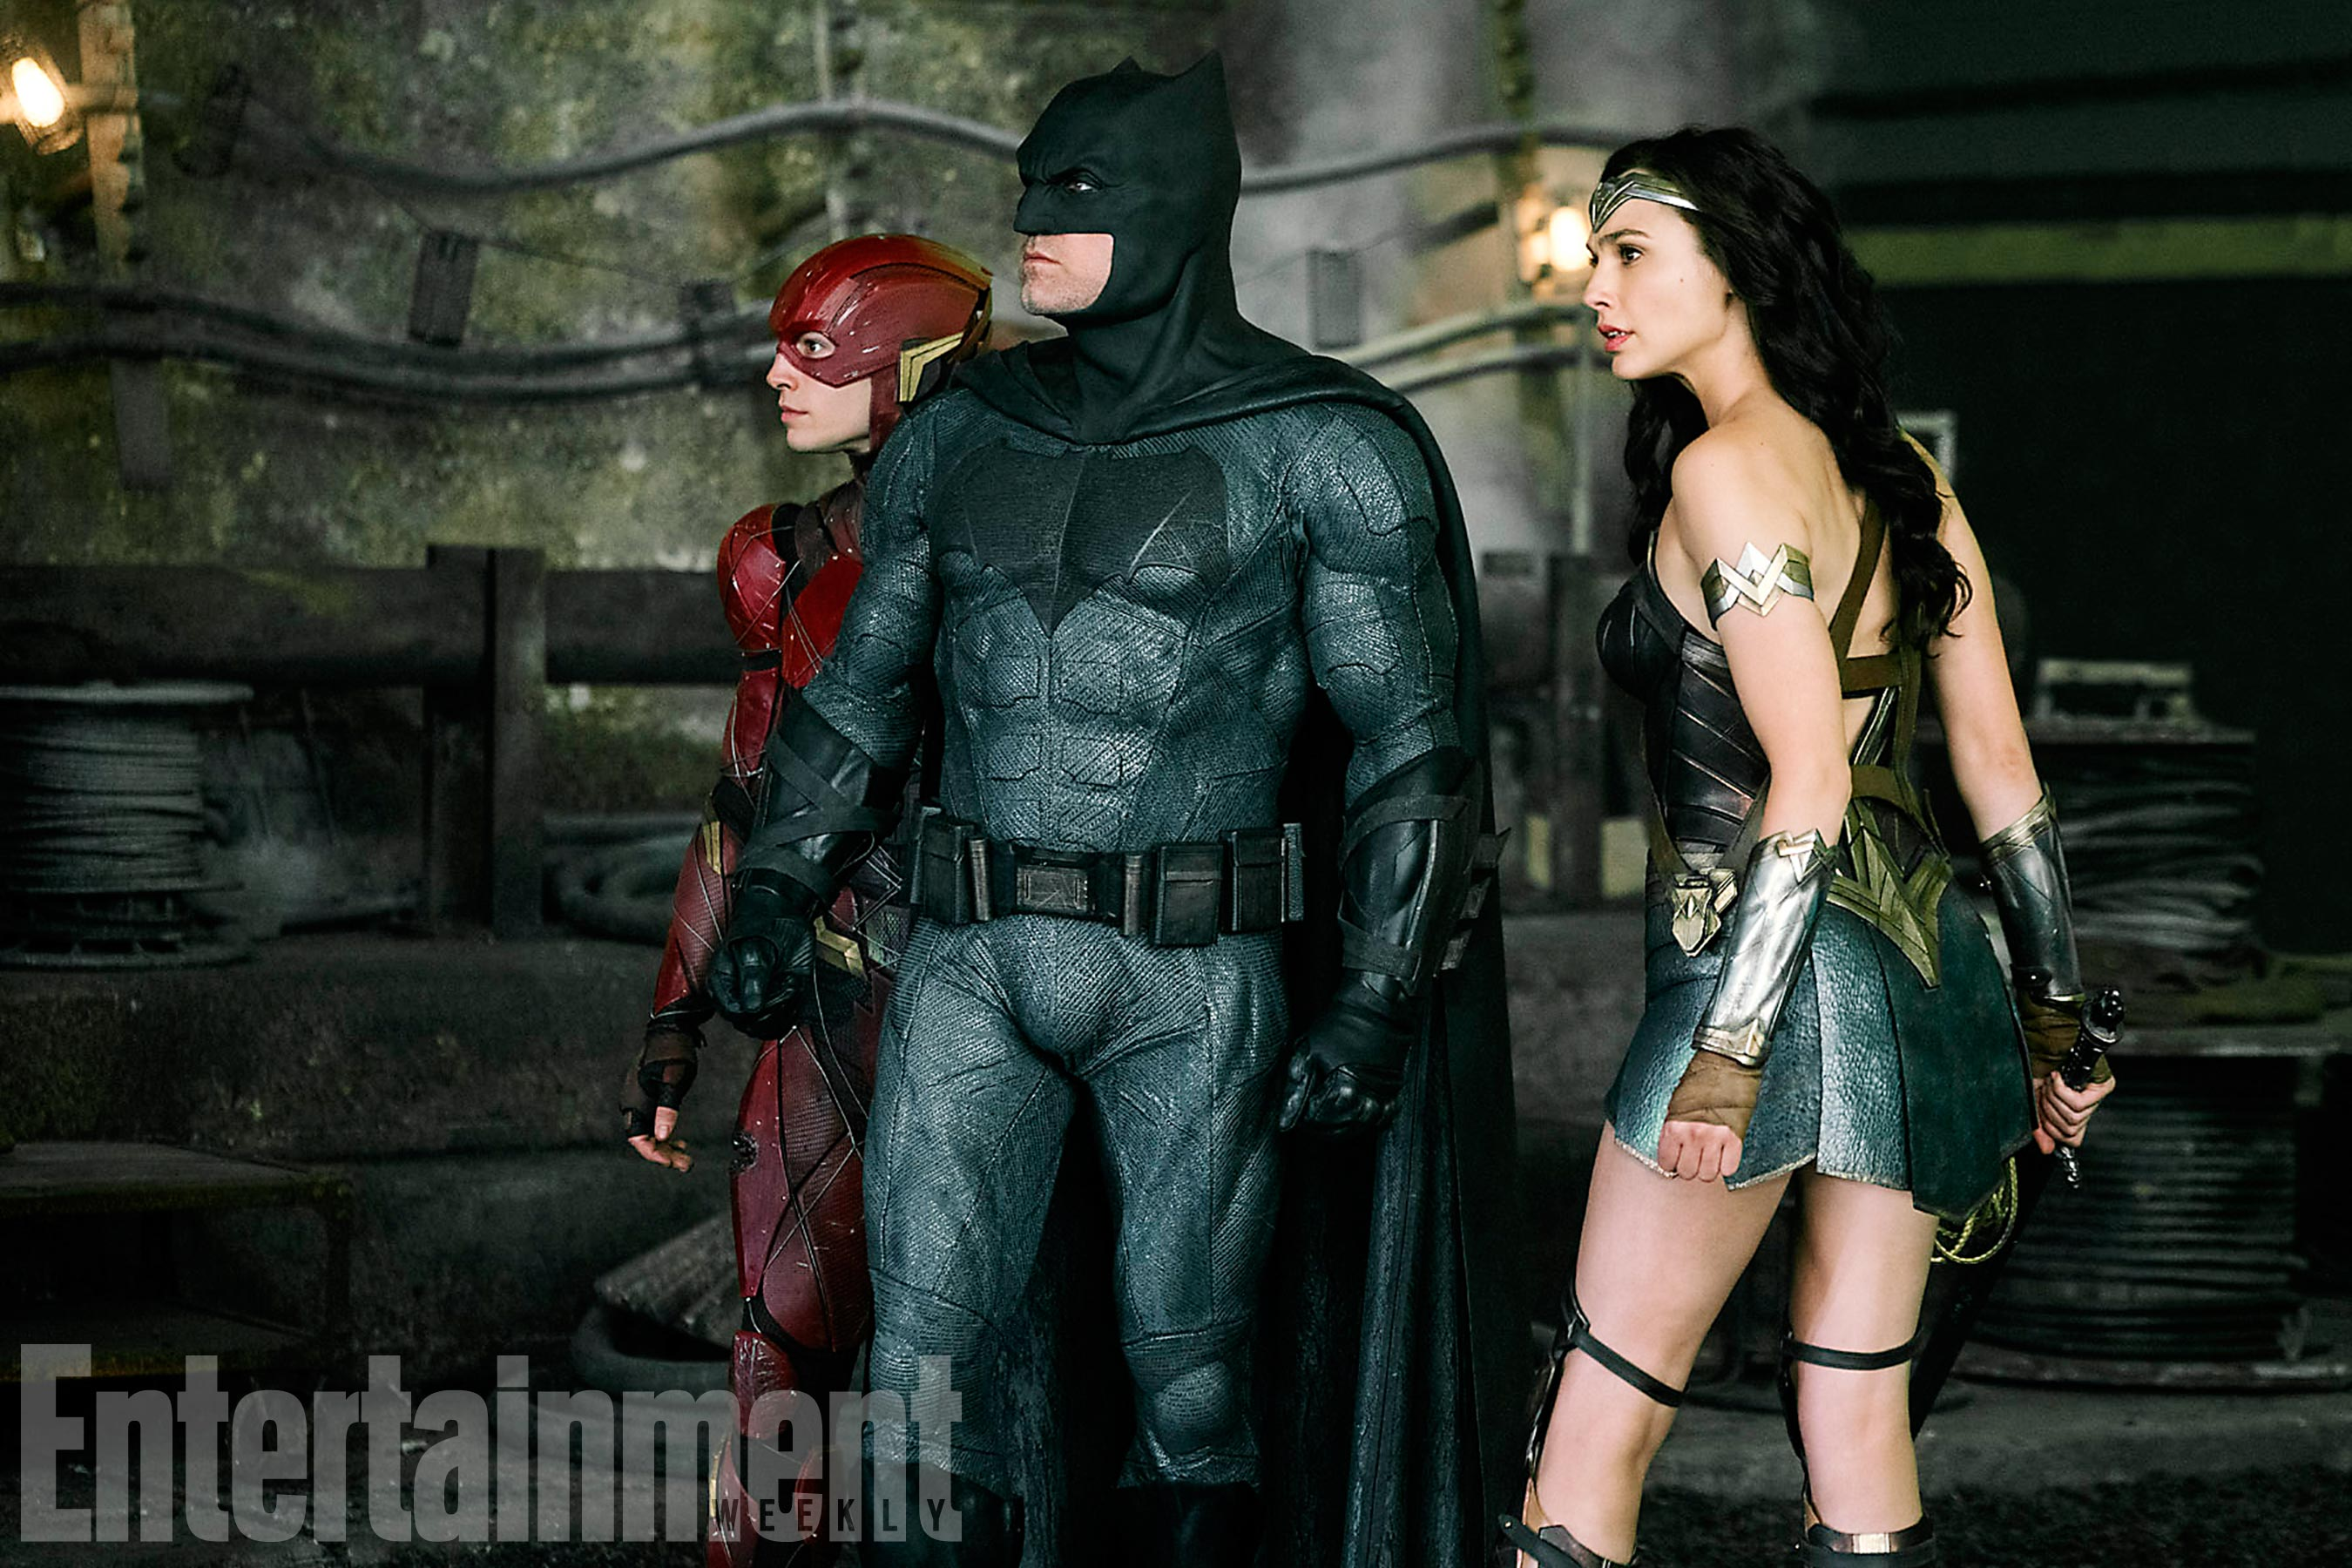 New Image From 'Justice League' Featuring Batman, Wonder Woman, And The Flash